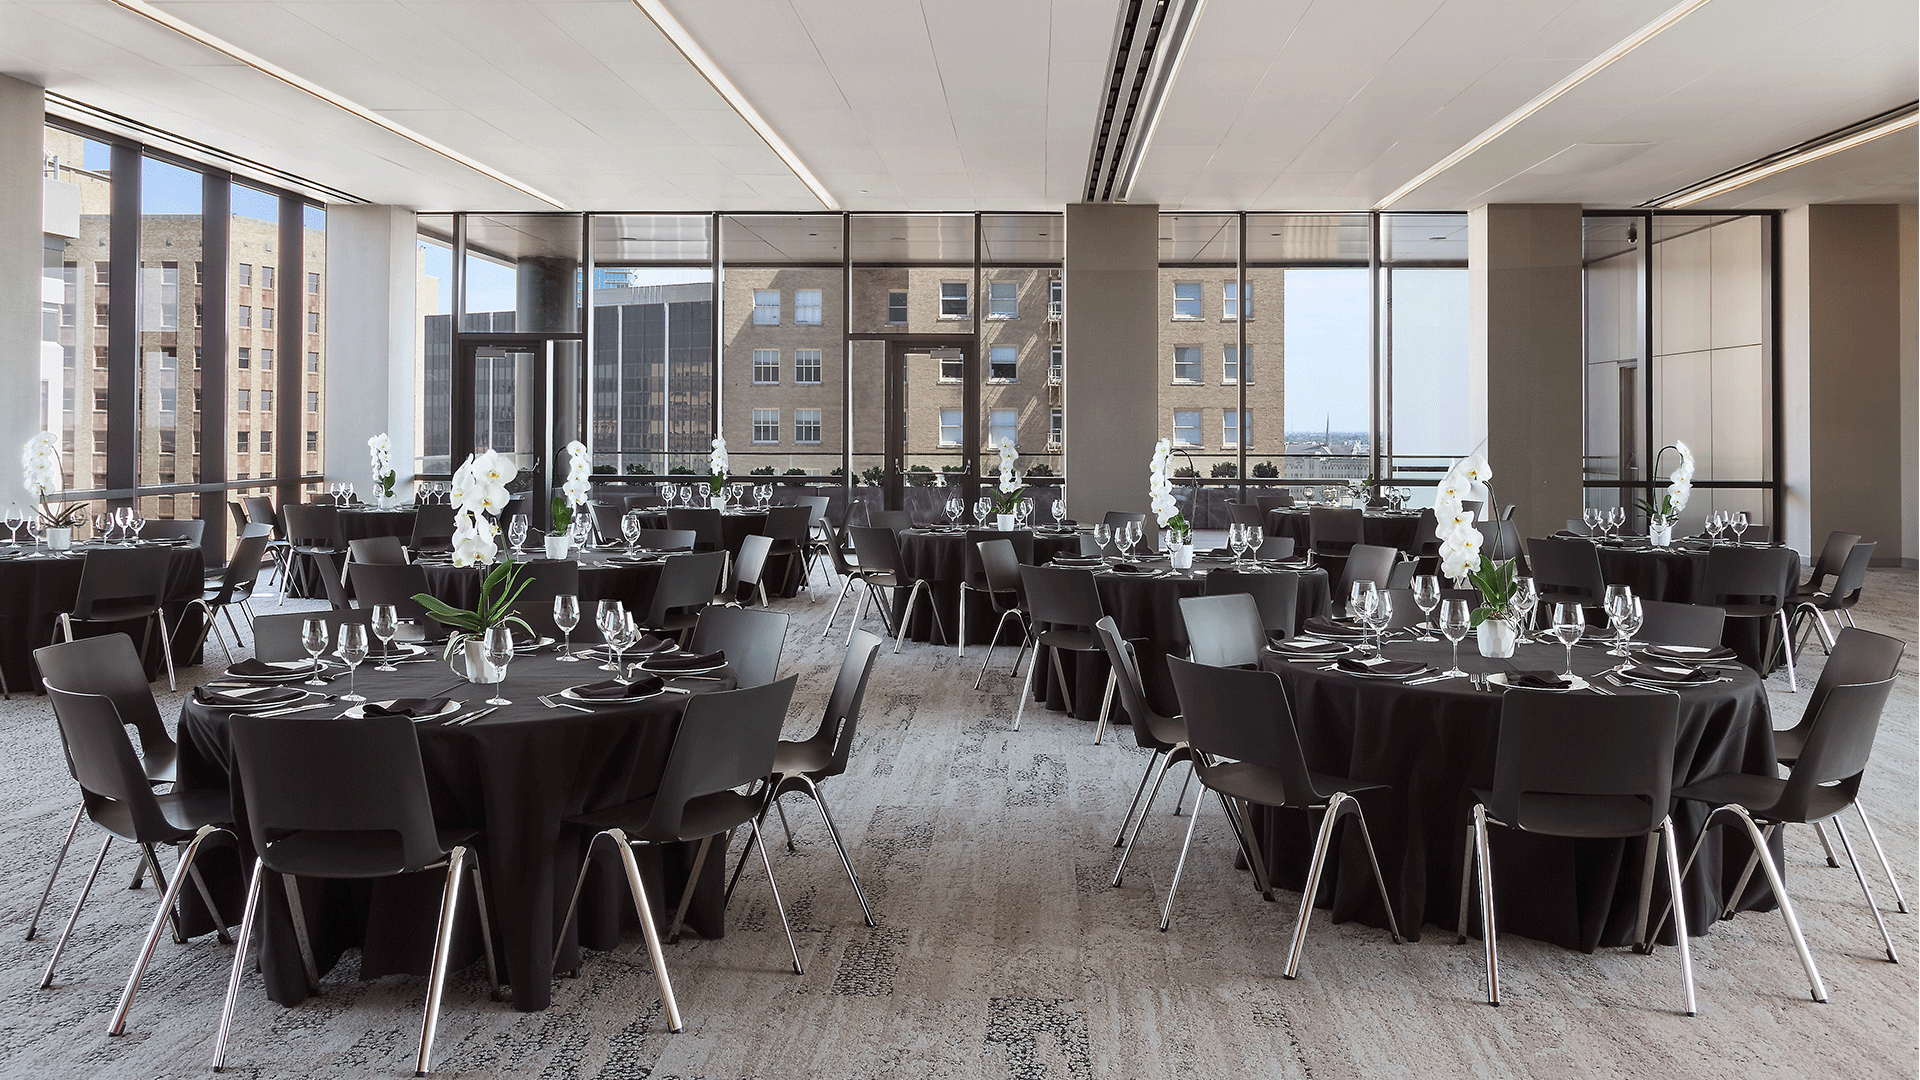 Anthracite Dining in the PalmWood Event and Conference Center | Best Venues in Fort Worth | Event Venue Fort Worth